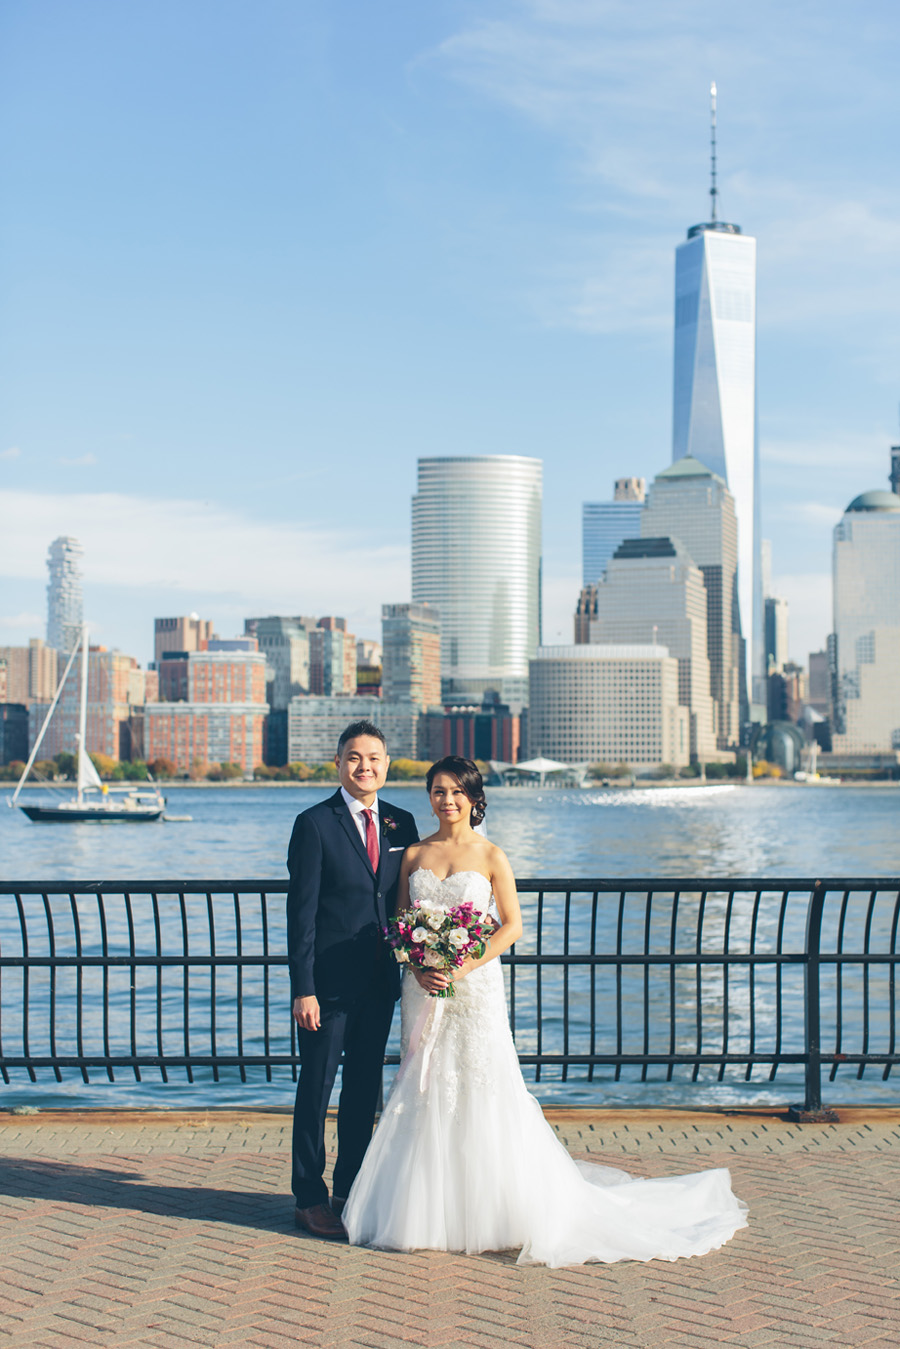 NYC-WEDDING-PHOTOGRAPHER-CYNTHIACHUNG-LILY-DAN-BLOG-069.jpg